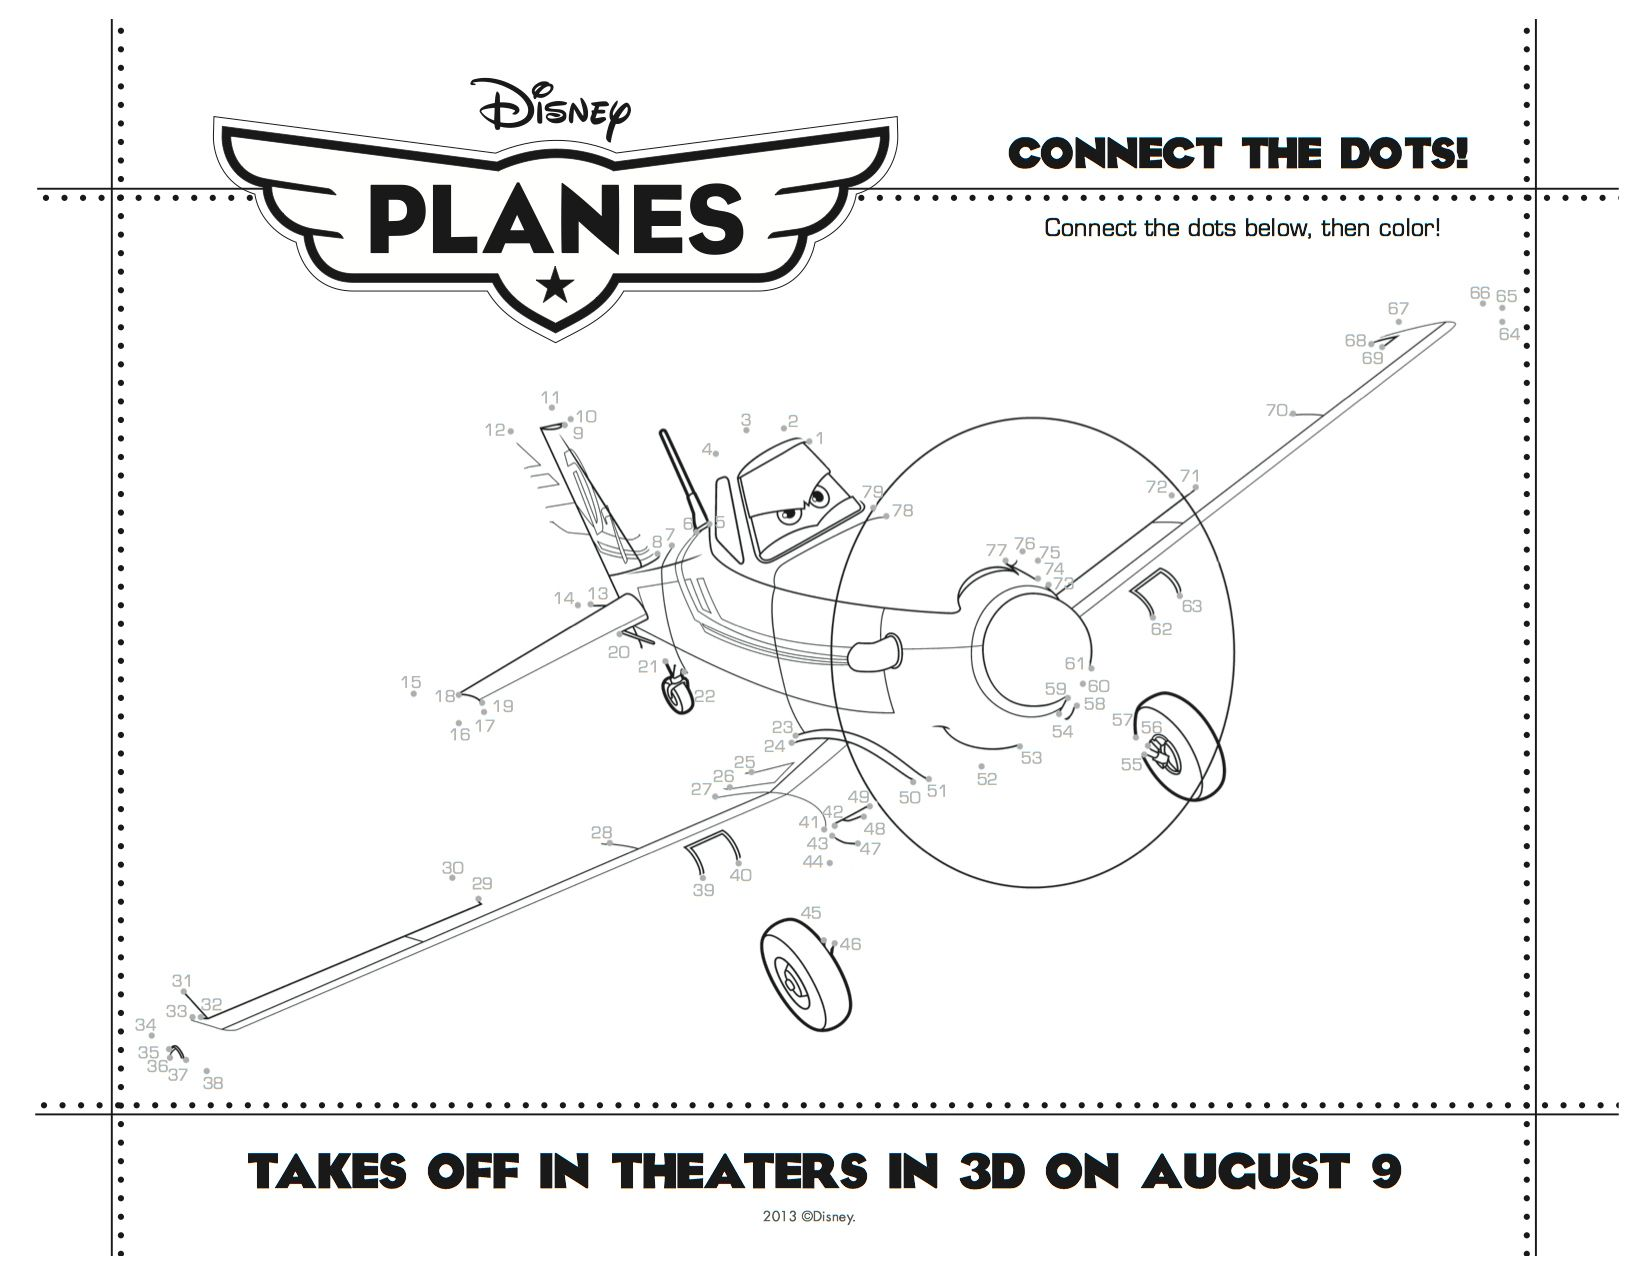 disney planes printable connect the dots printable coloring